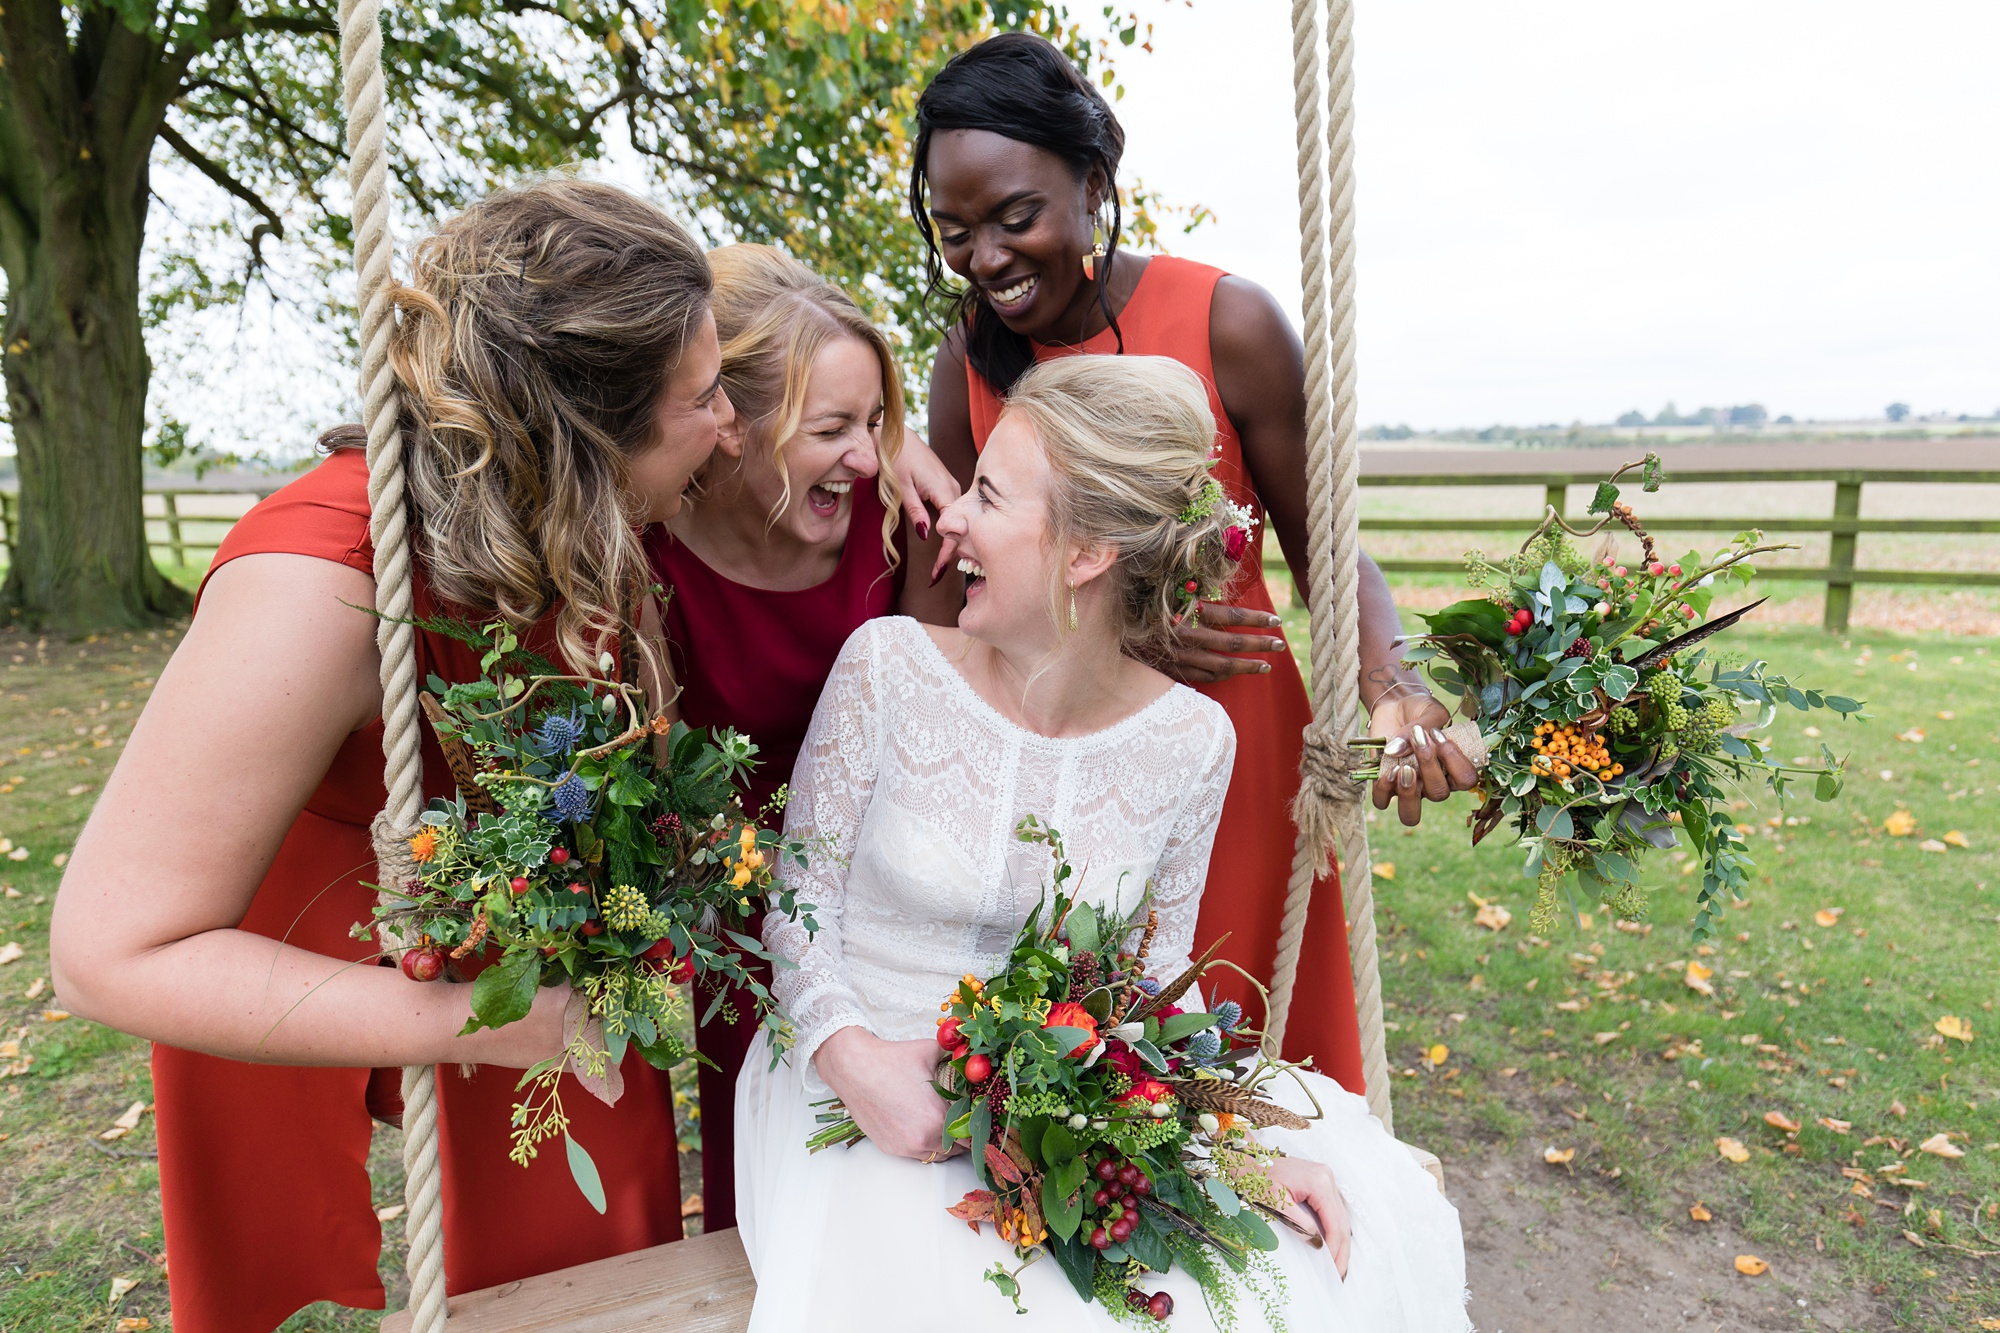 Yorkshire Wedding Photographers at Barmbyfield Barn smiling and laughing with bridesmaids